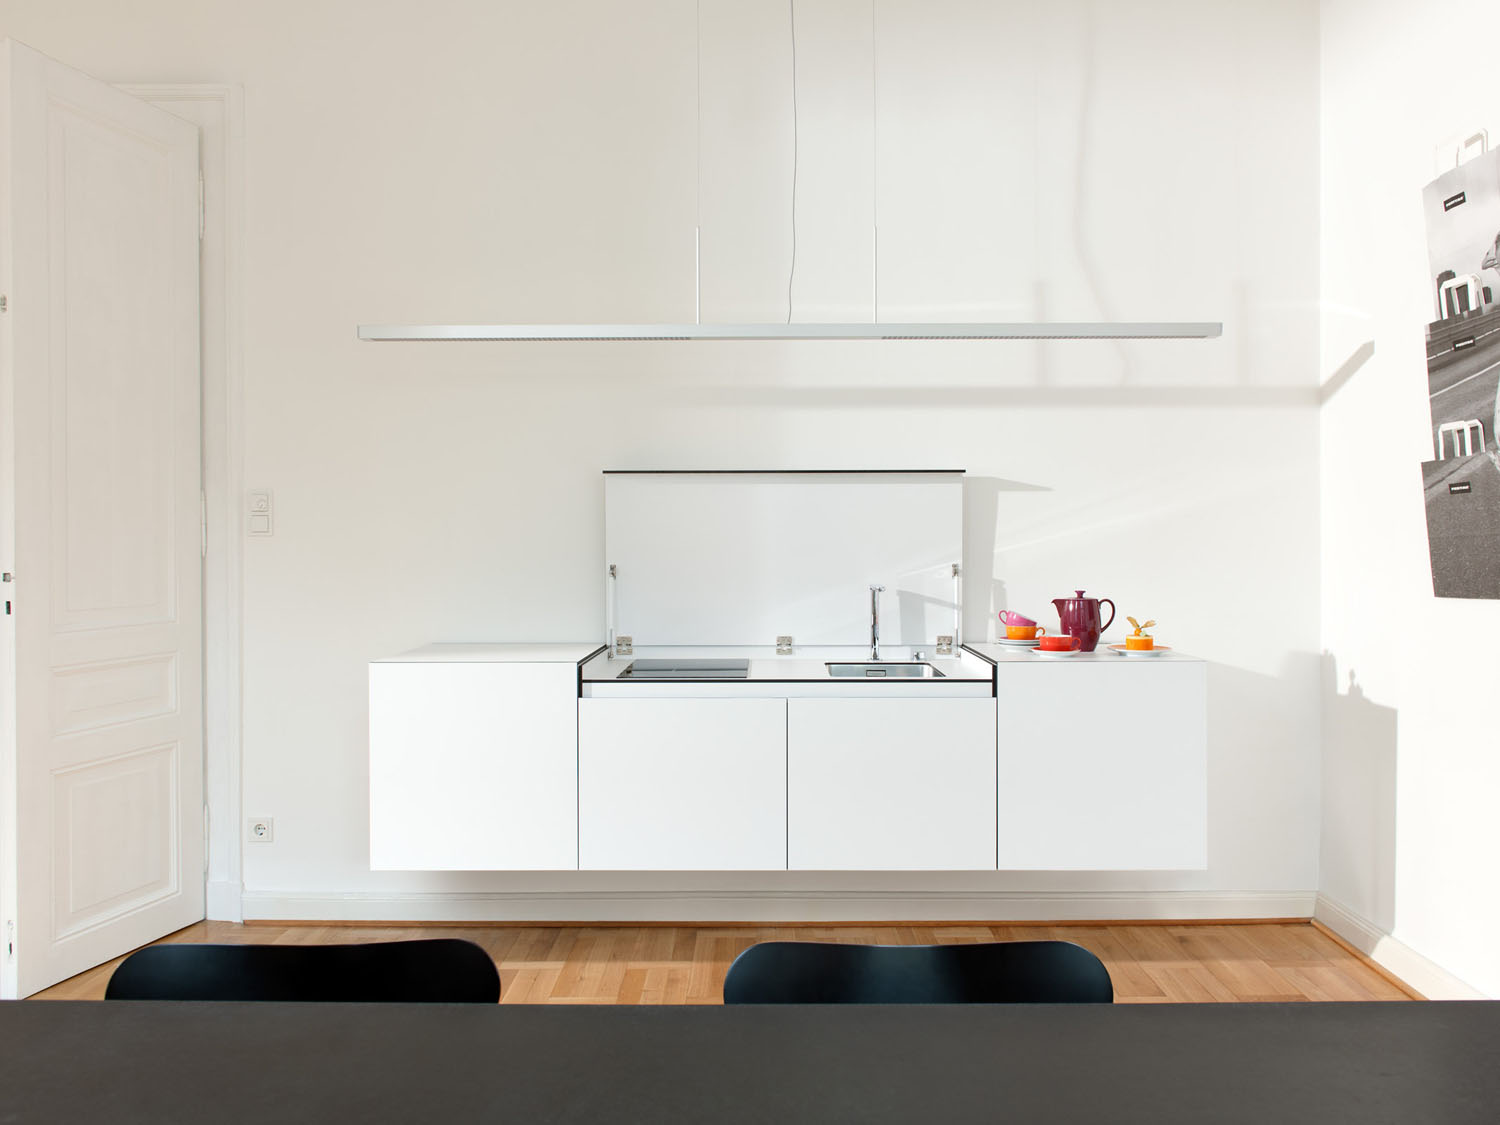 Timeless minimalist space saving kitchen module idesignarch interior design architecture - Ikea furniture for small spaces minimalist ...